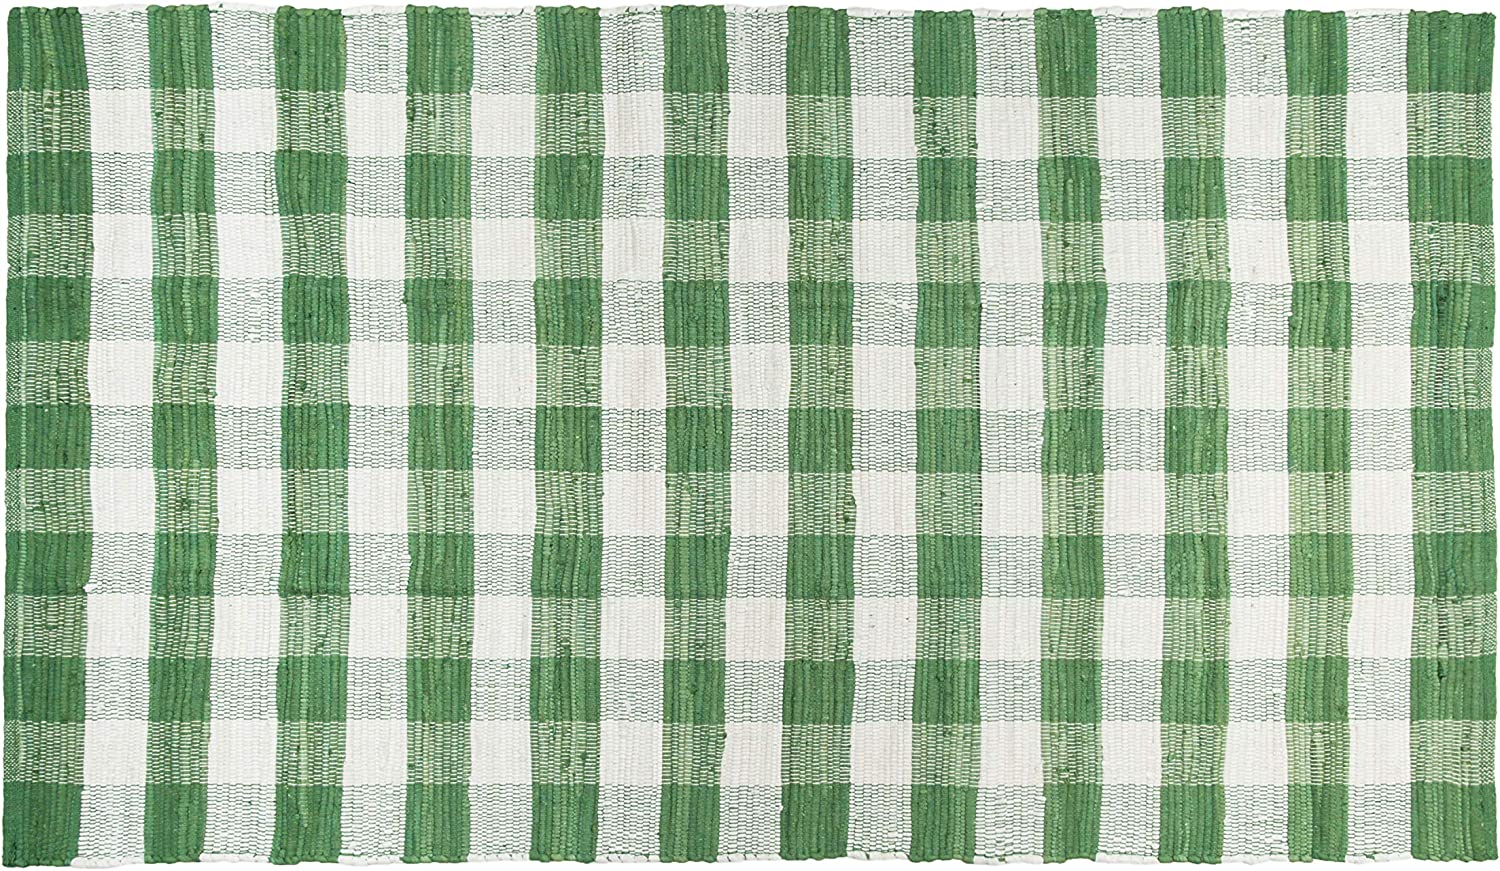 GLAMBURG Cotton Reversible Area Rug 3' x 5' Farmhouse Floor Mat, Washable Carpet Checkered Plaid Rug for Front Porch Living Room Kitchen Bedroom - Green White